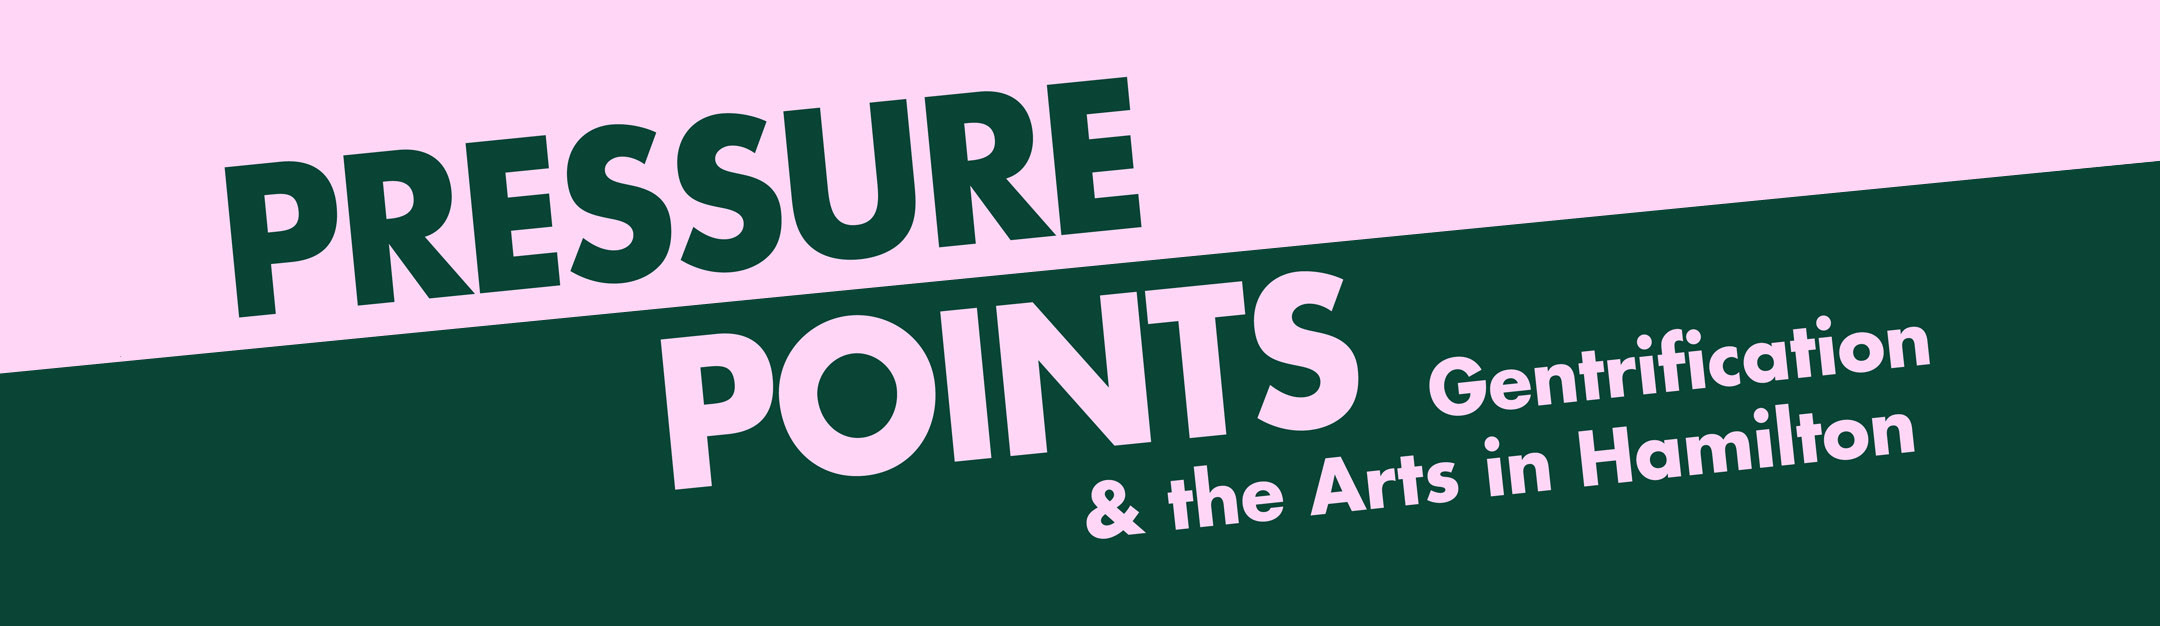 """A light pink and forest green banner graphic, with serif font that says """"Pressure Points"""" in capital letters. There is a subtitle that says: """"Gentrification & The Arts in Hamilton."""""""